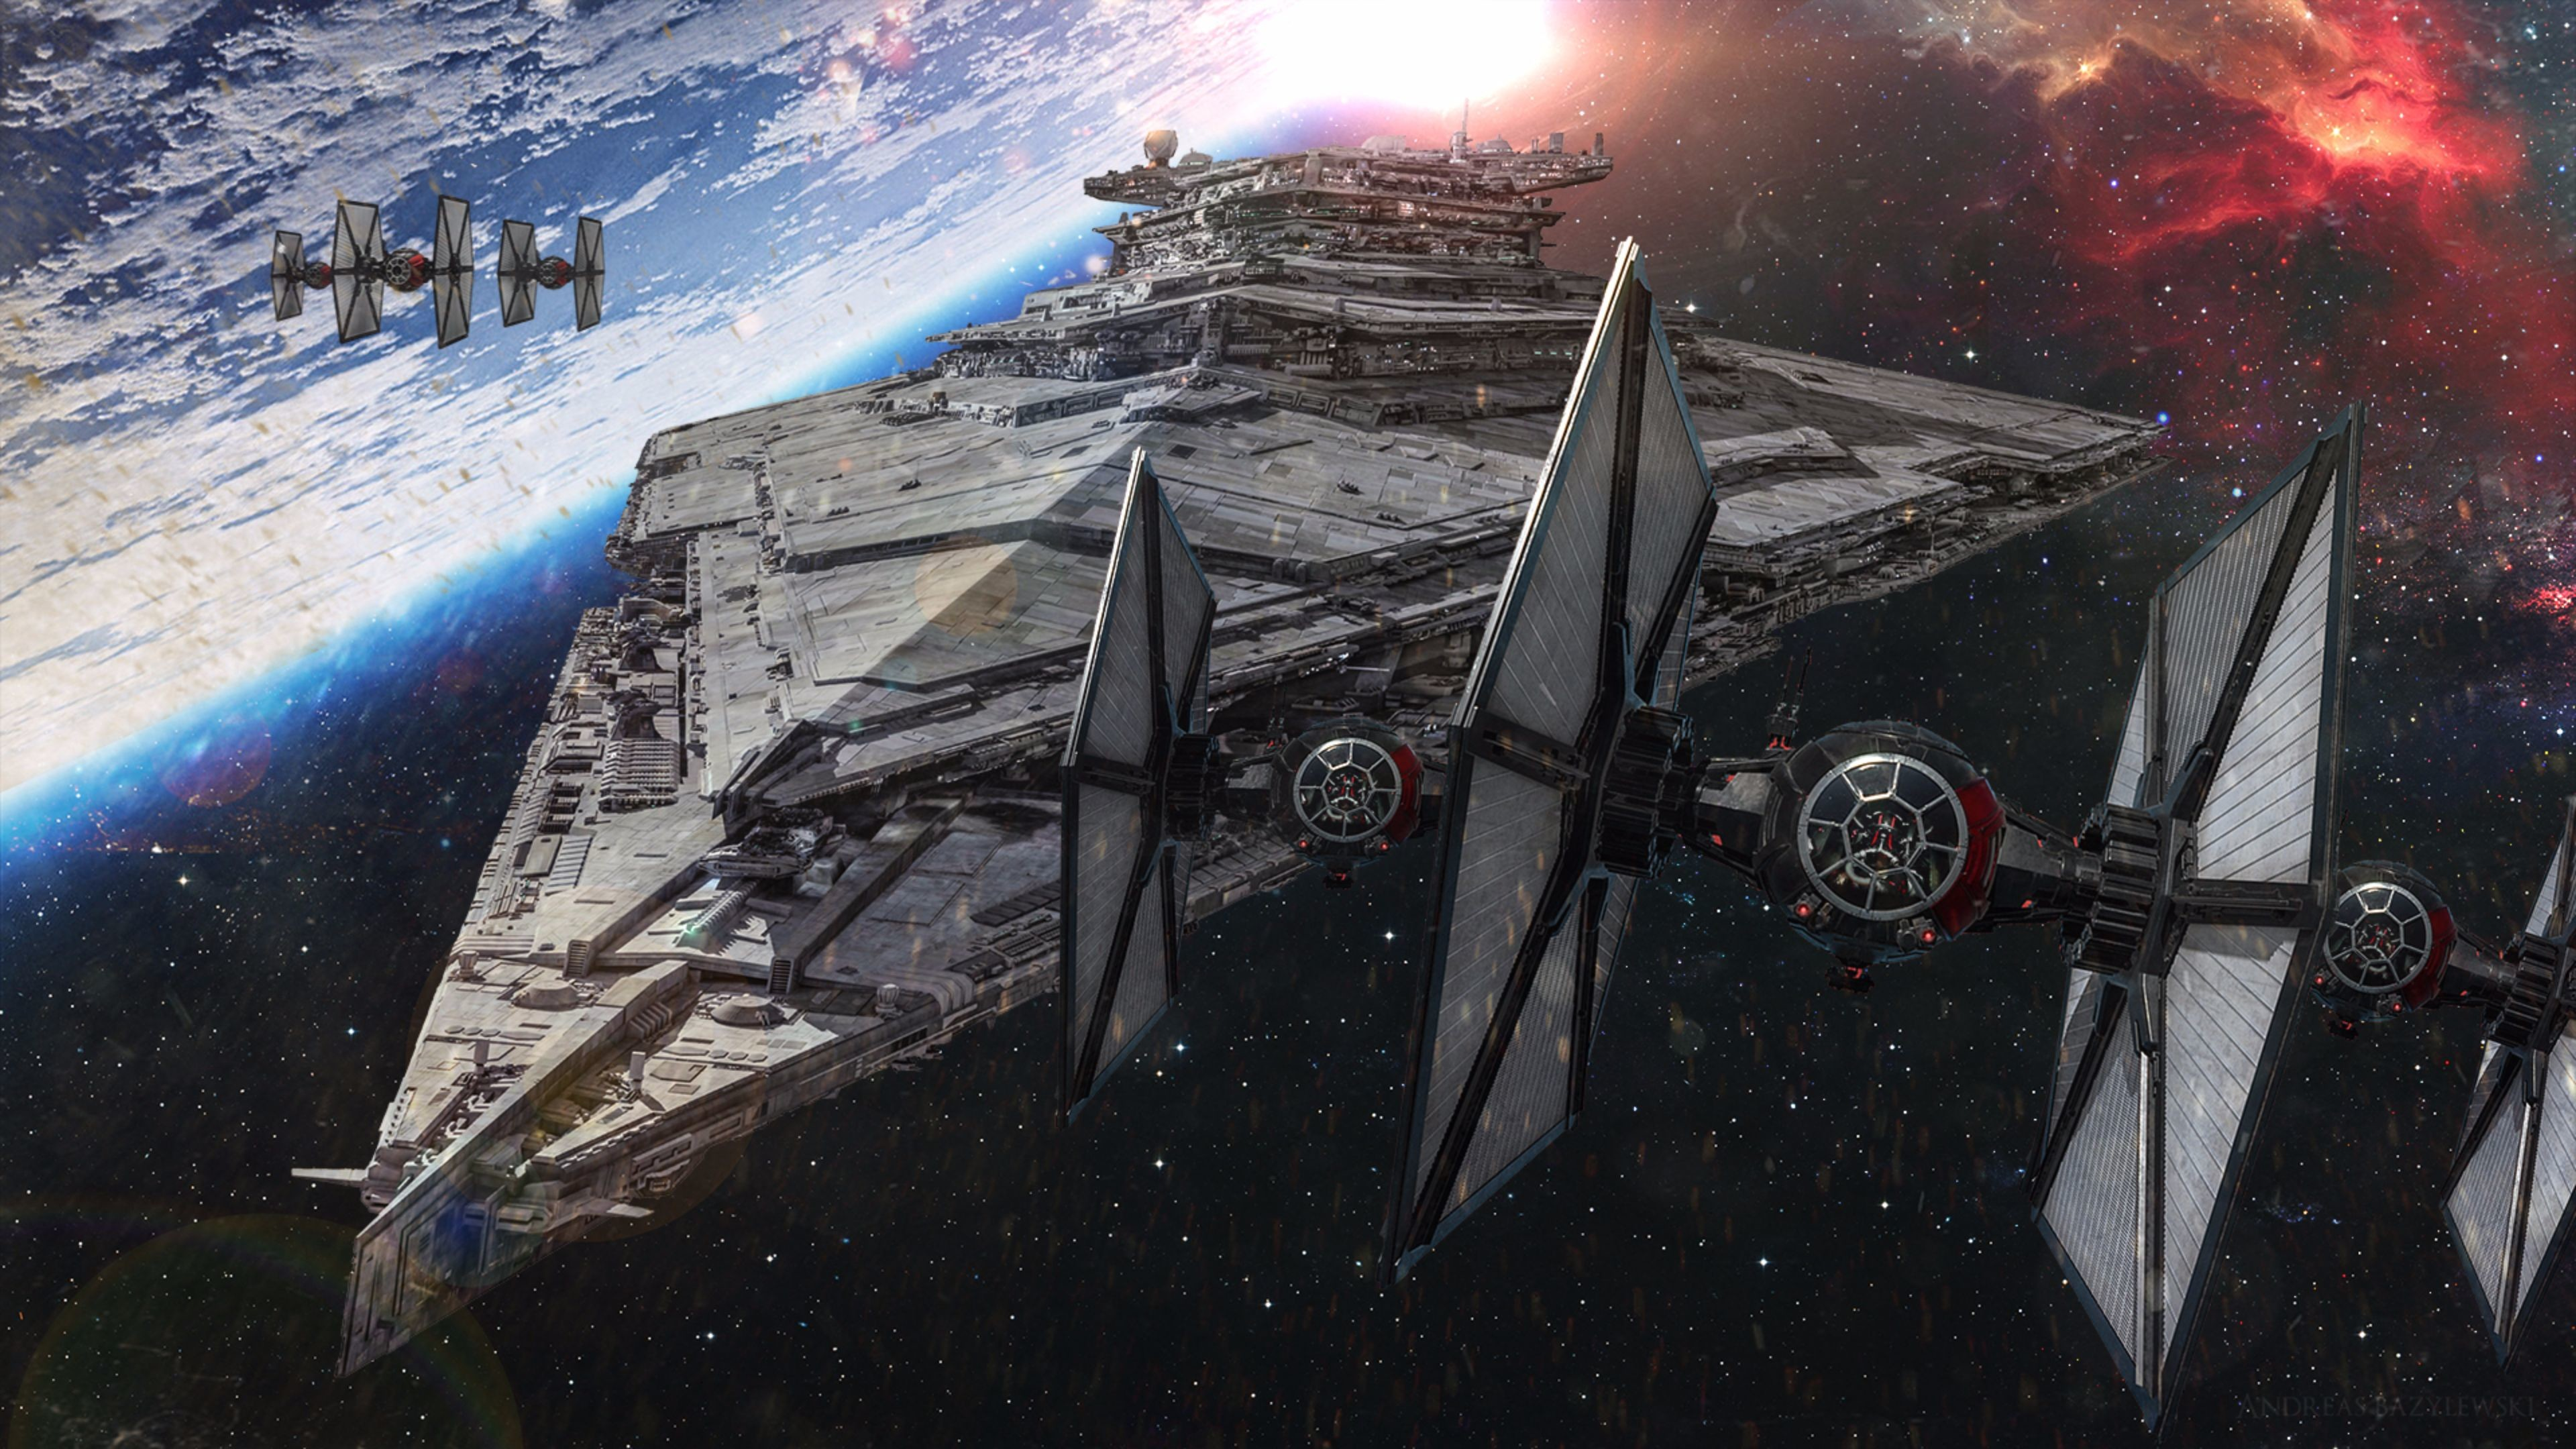 Star Wars Wallpapers Hd 81 Background Pictures